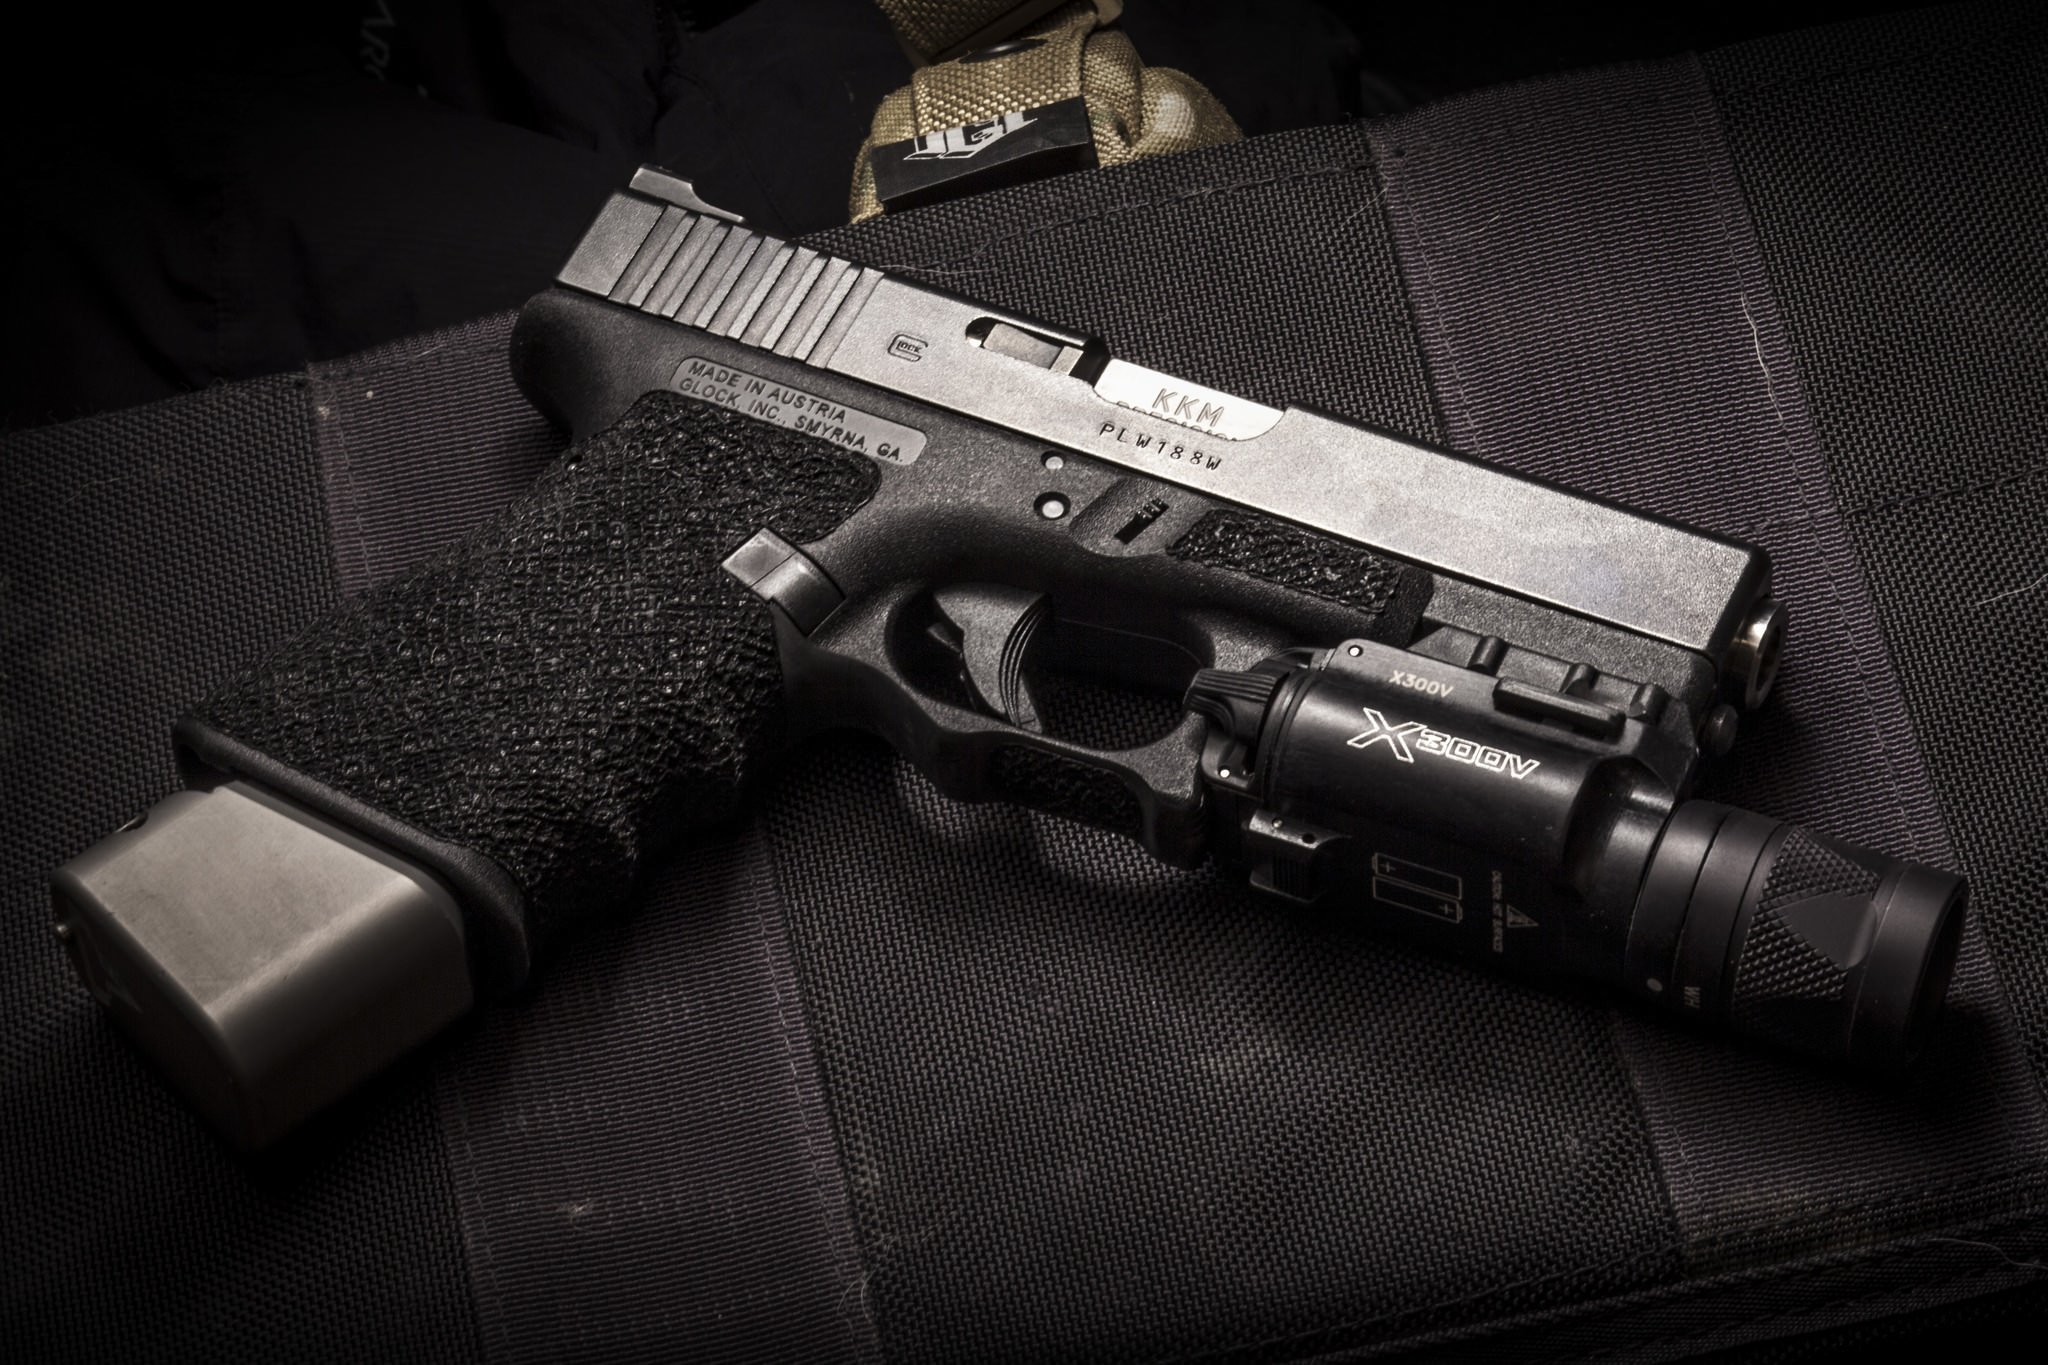 glock screensavers and wallpaper wallpapersafari